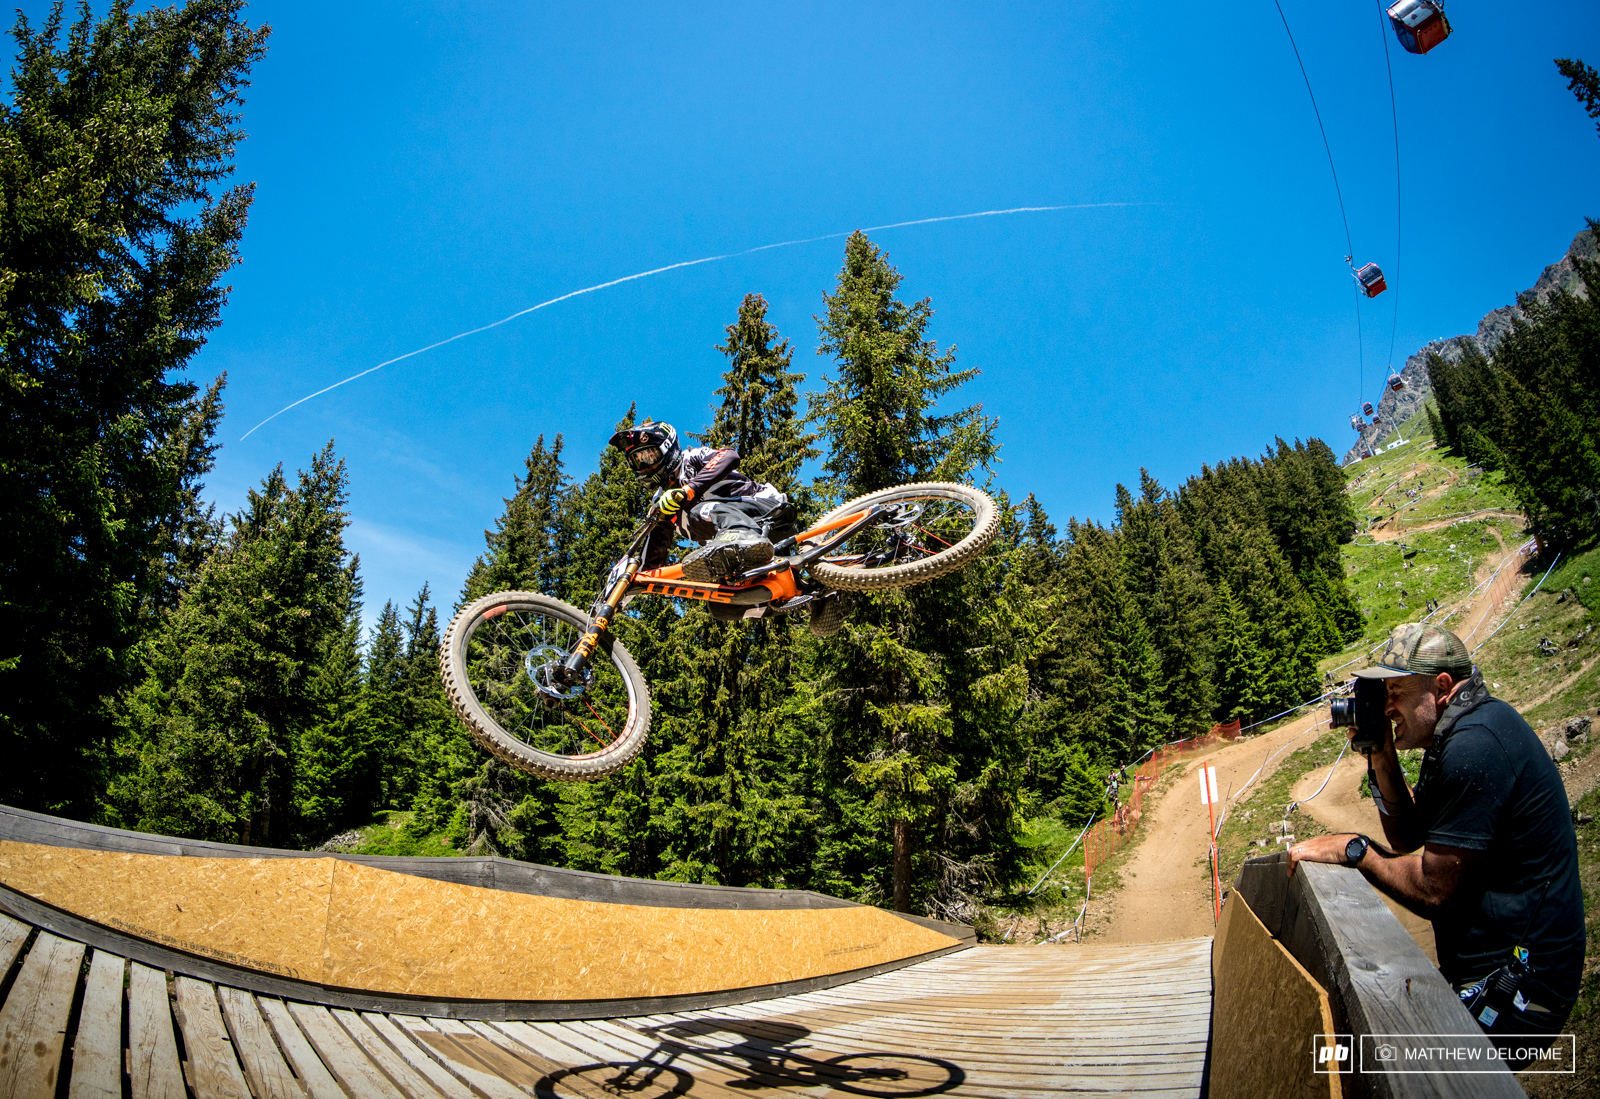 Sven Martin found some precarious footing from which to shoot some fisheye whips.